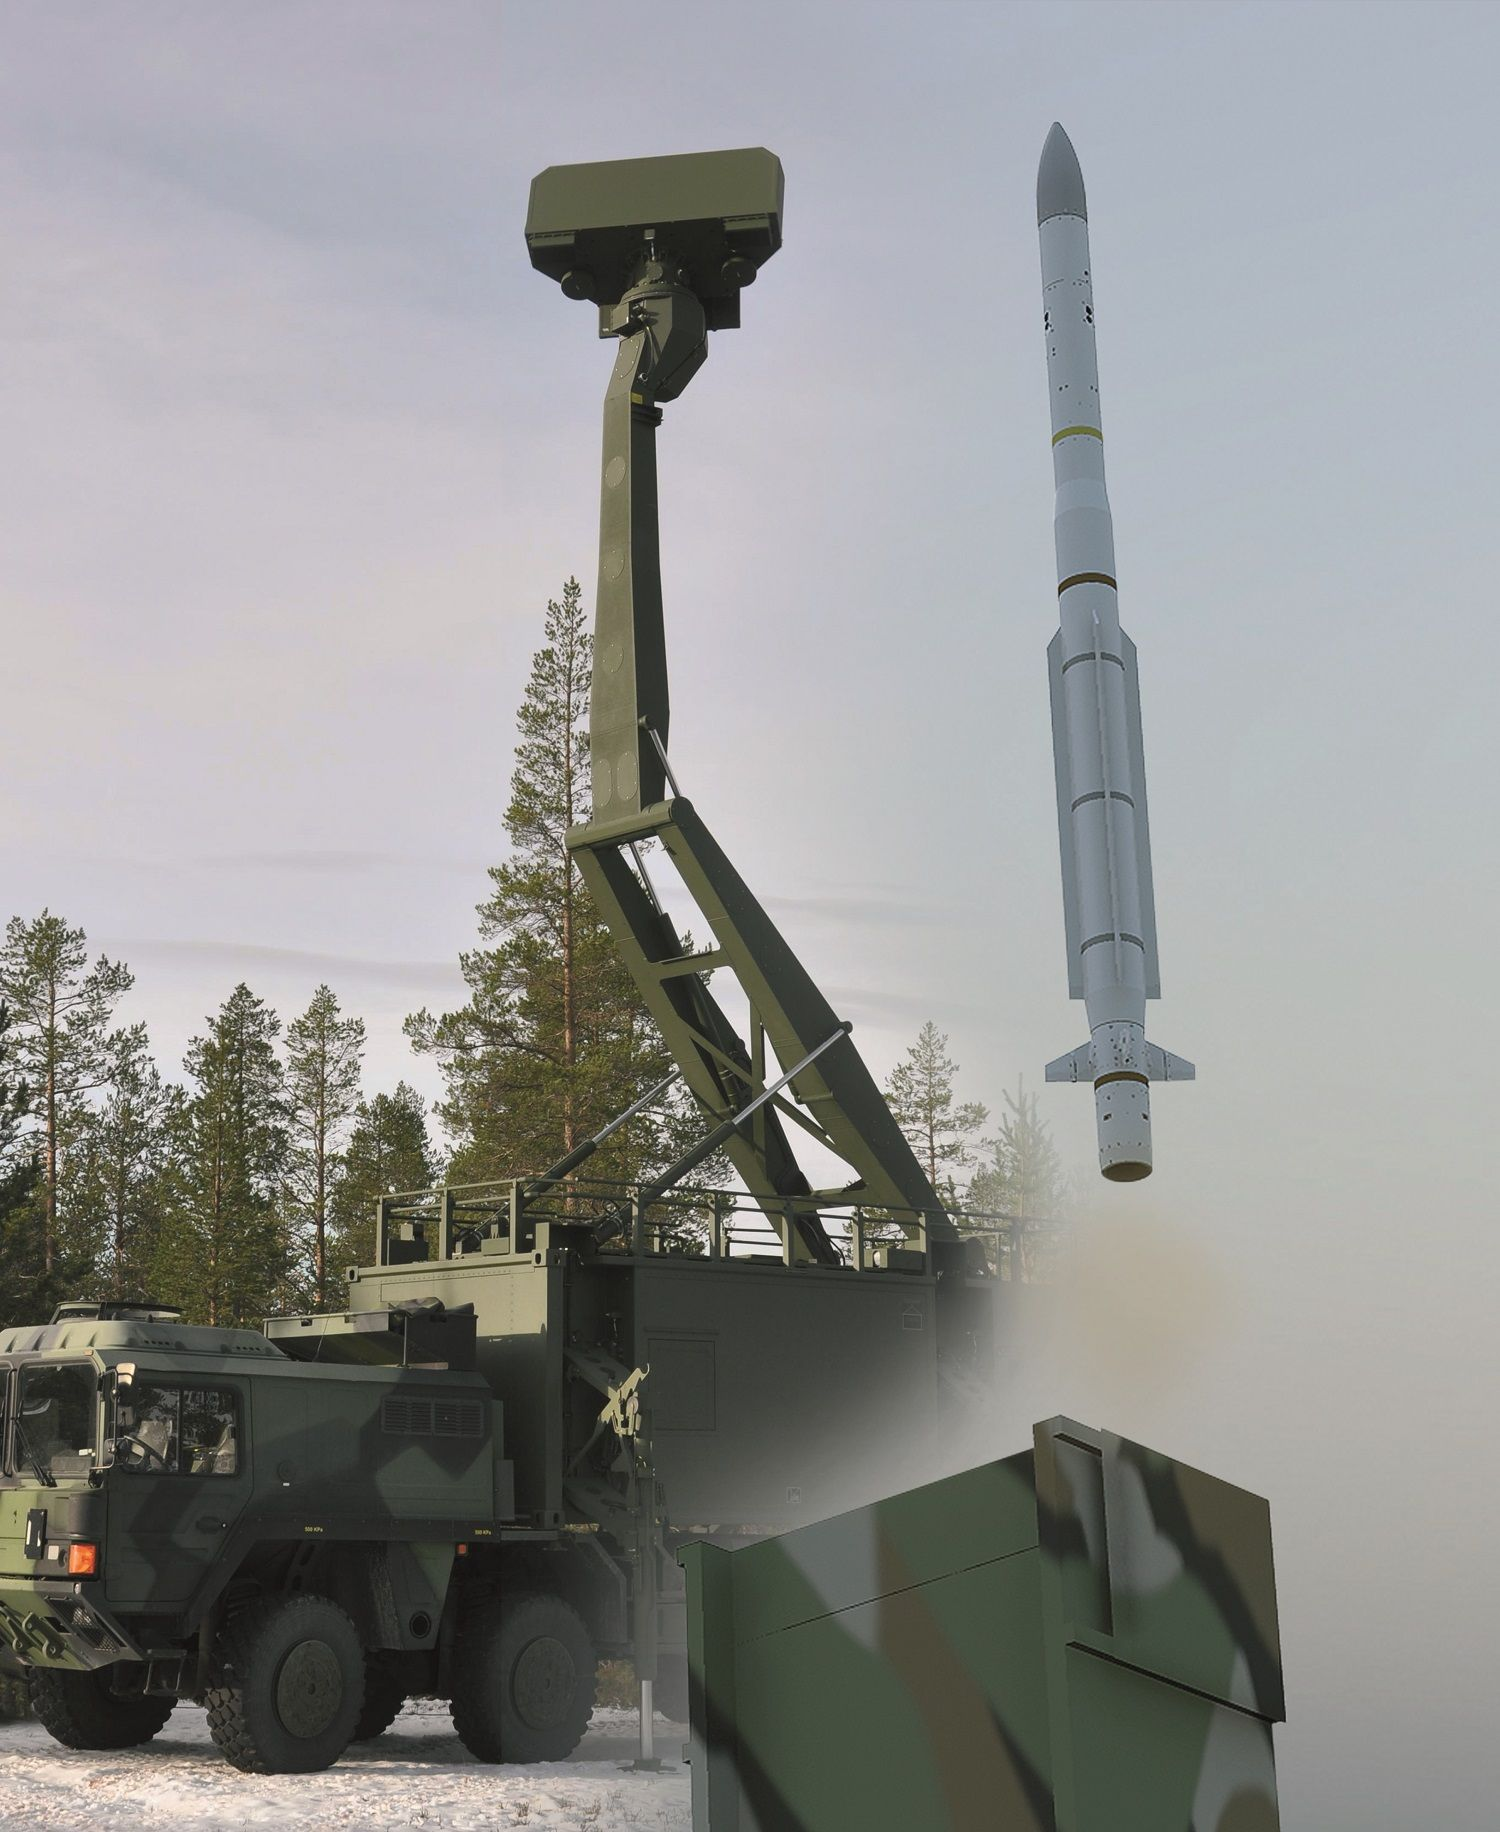 CAMM-ER has an active RF seeker that provides true all-weather performance with excellent clutter rejection capabilities. There is no need for dedicated complex and high-cost fire control/illumination radars. (Image: MBDA)